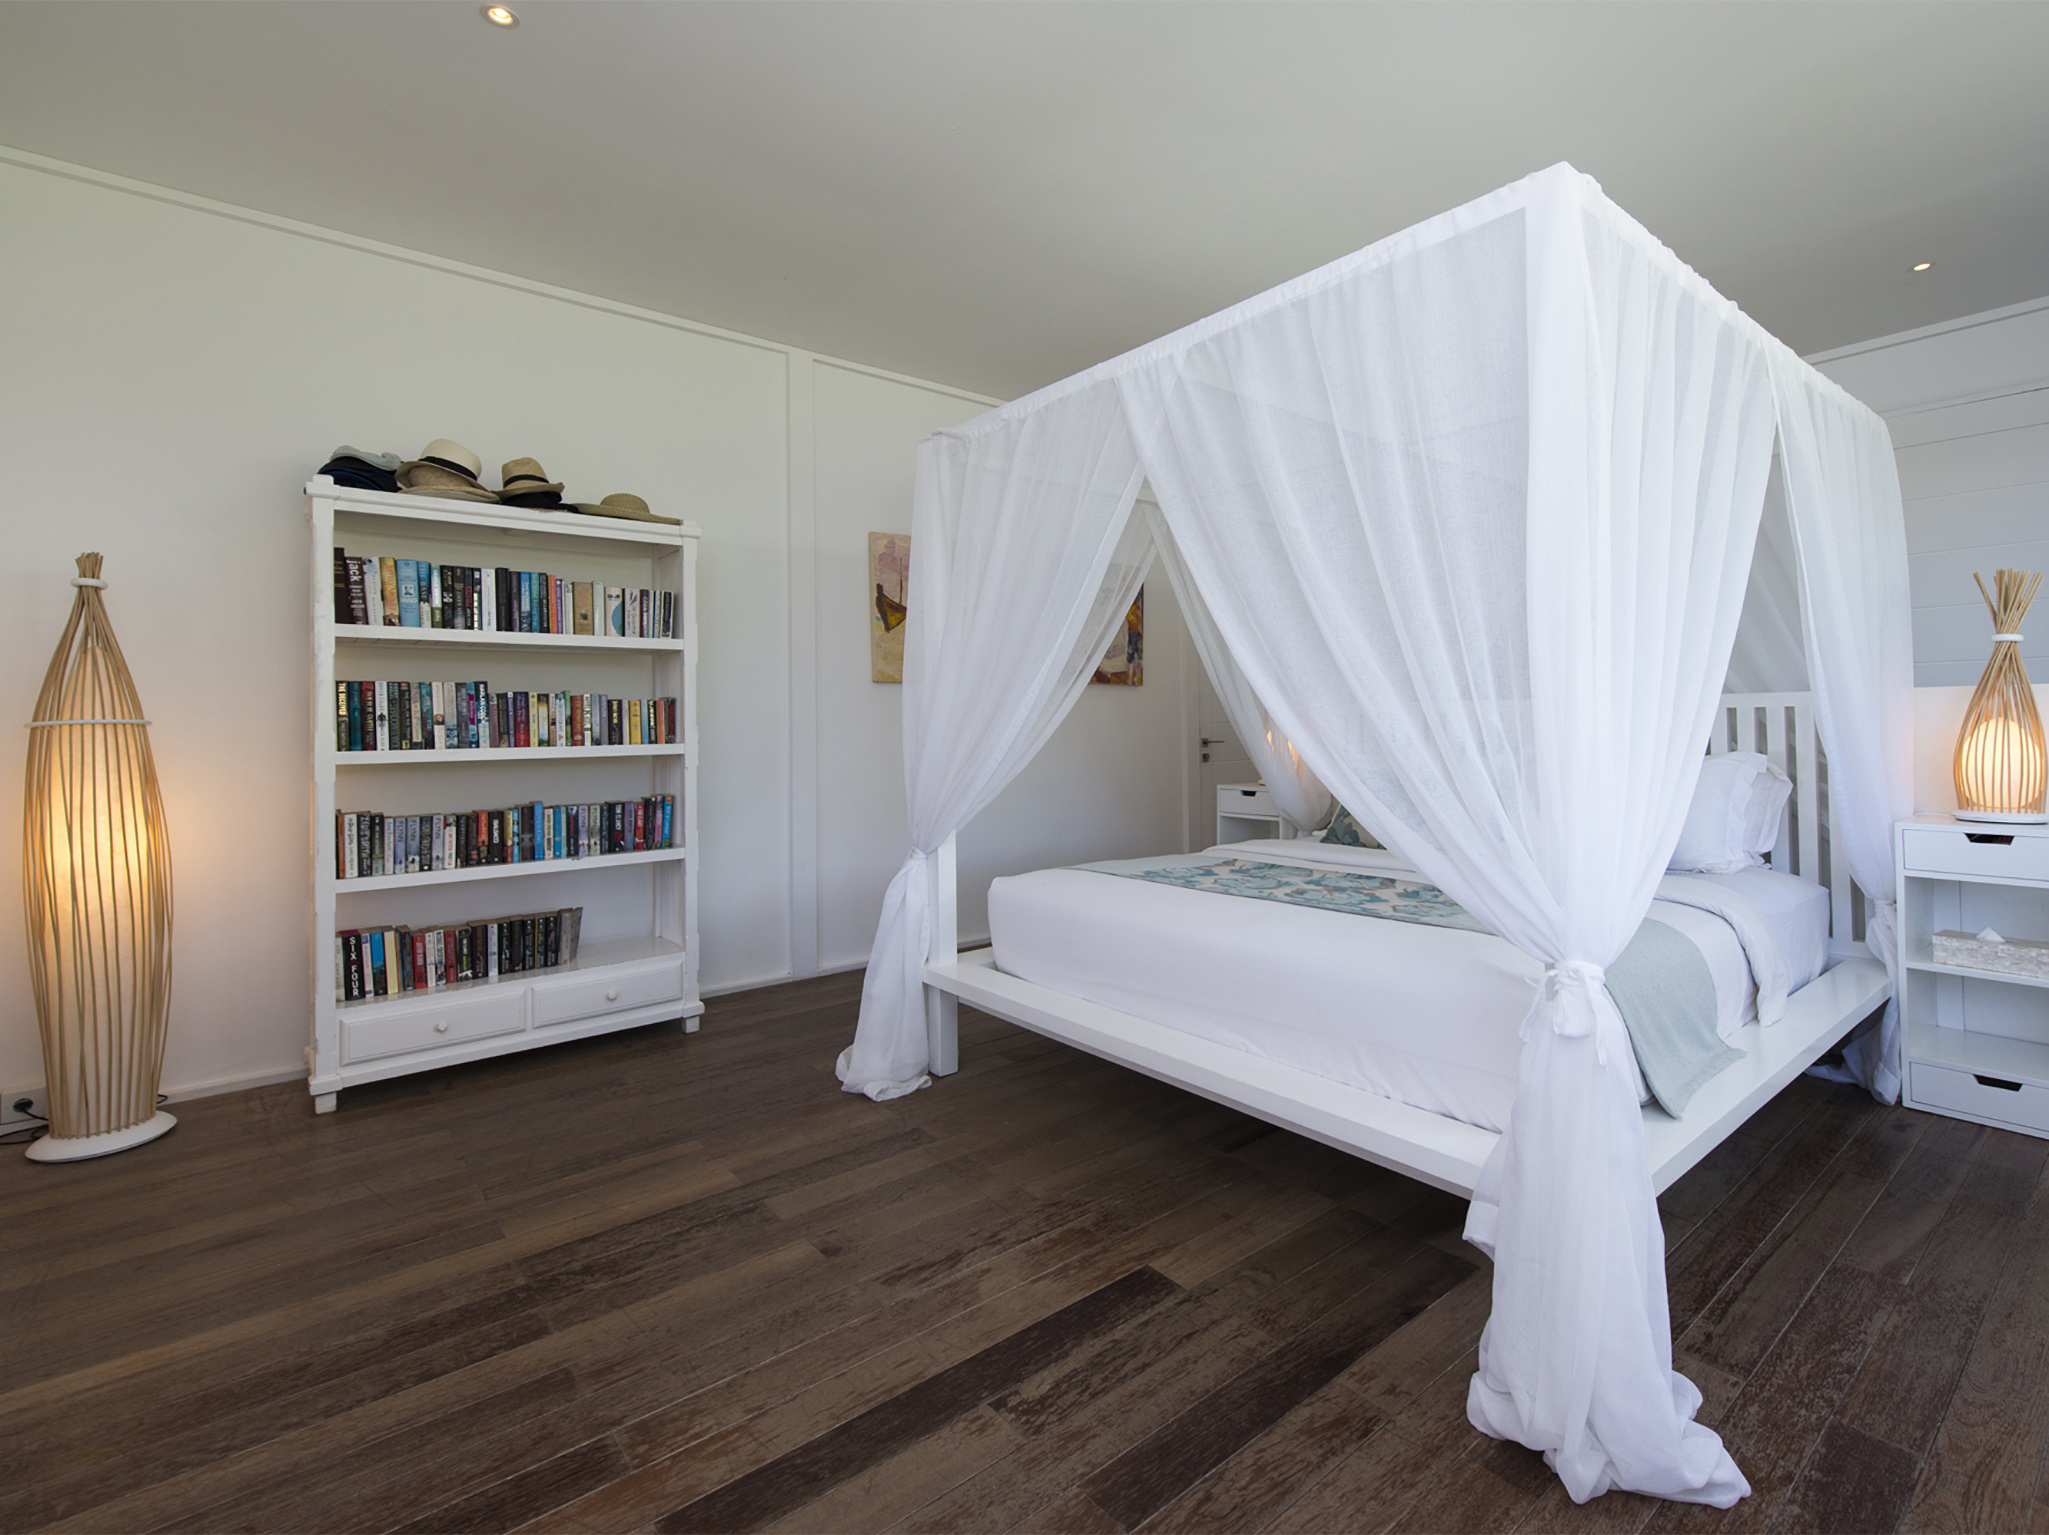 The Beach Shack - Contemporary elegance of guest bedroom